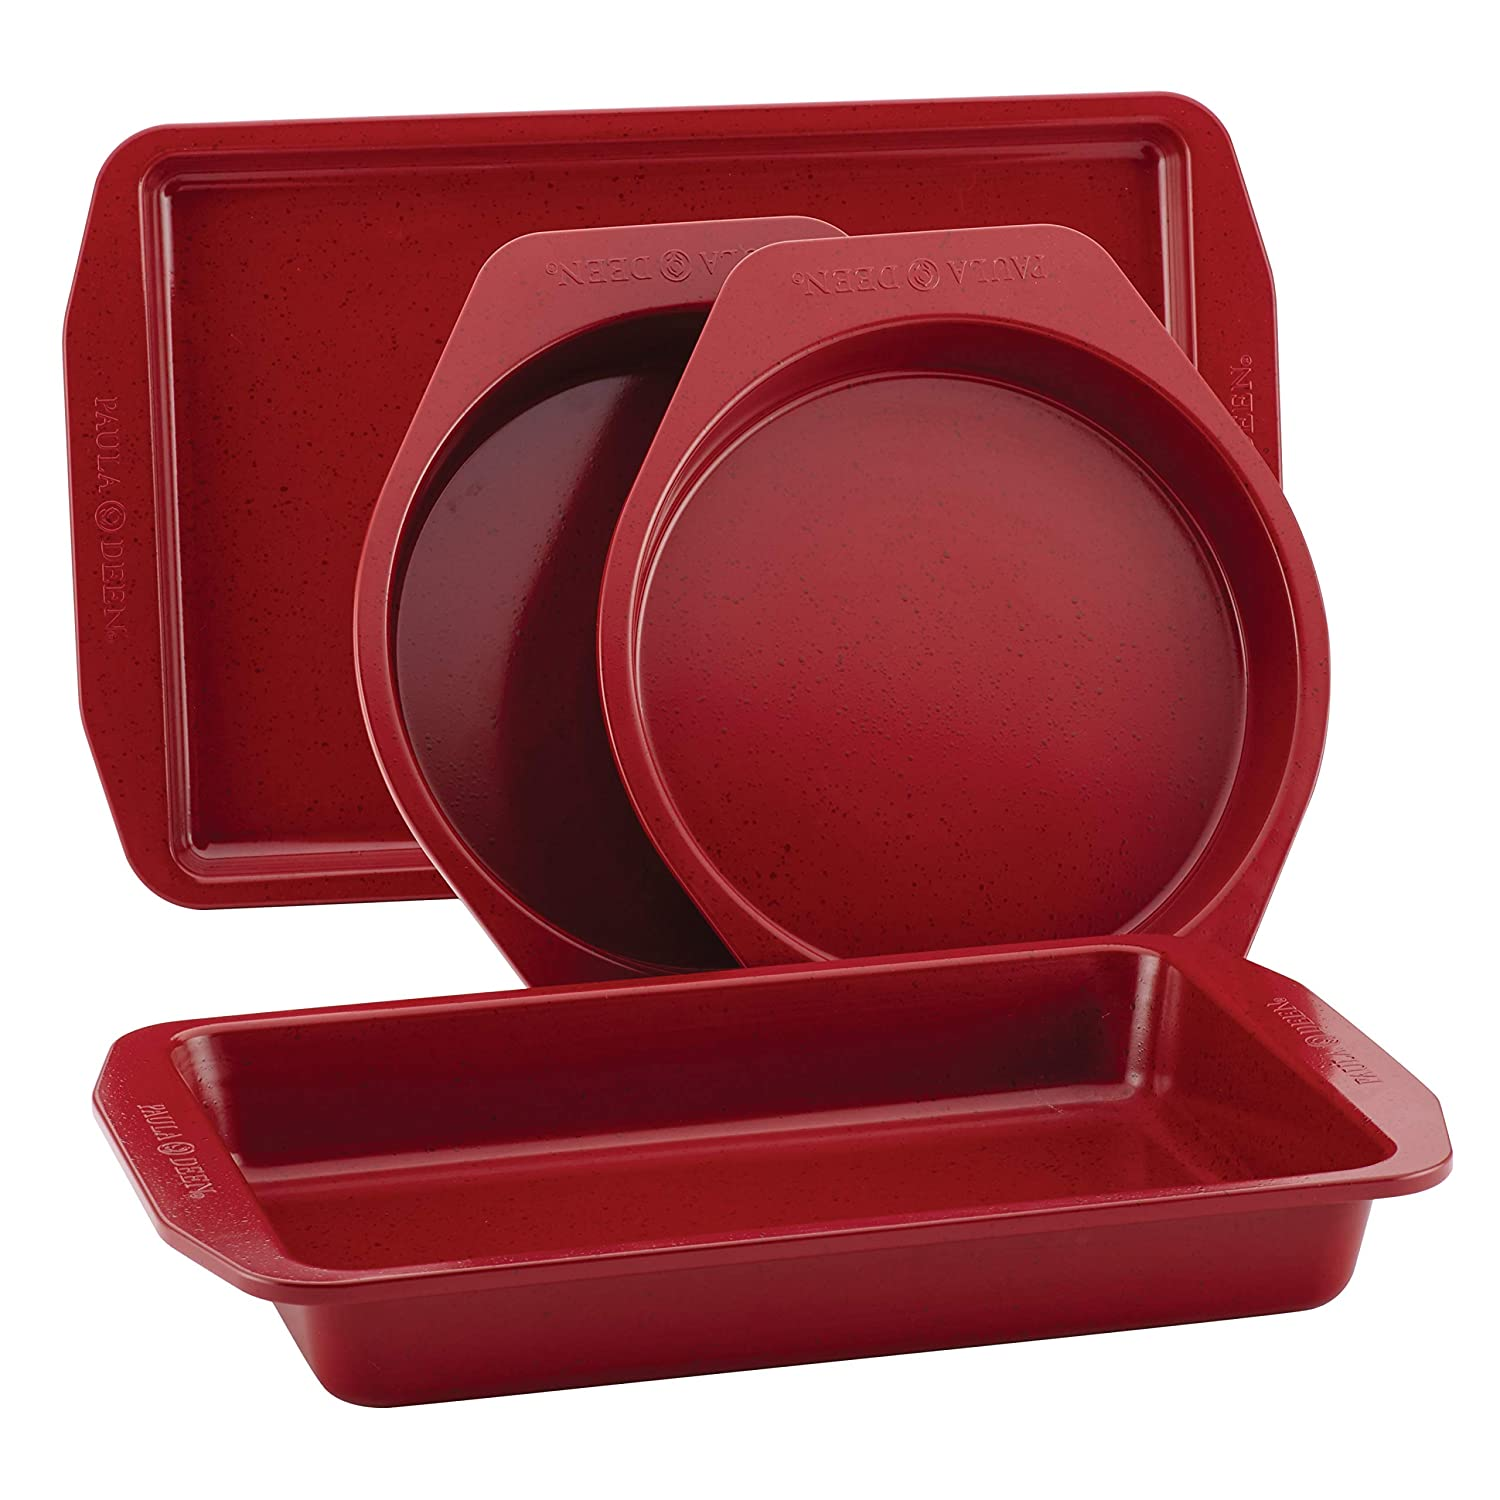 Paula Deen Nonstick Bakeware Set, 4-Piece, Red Speckle